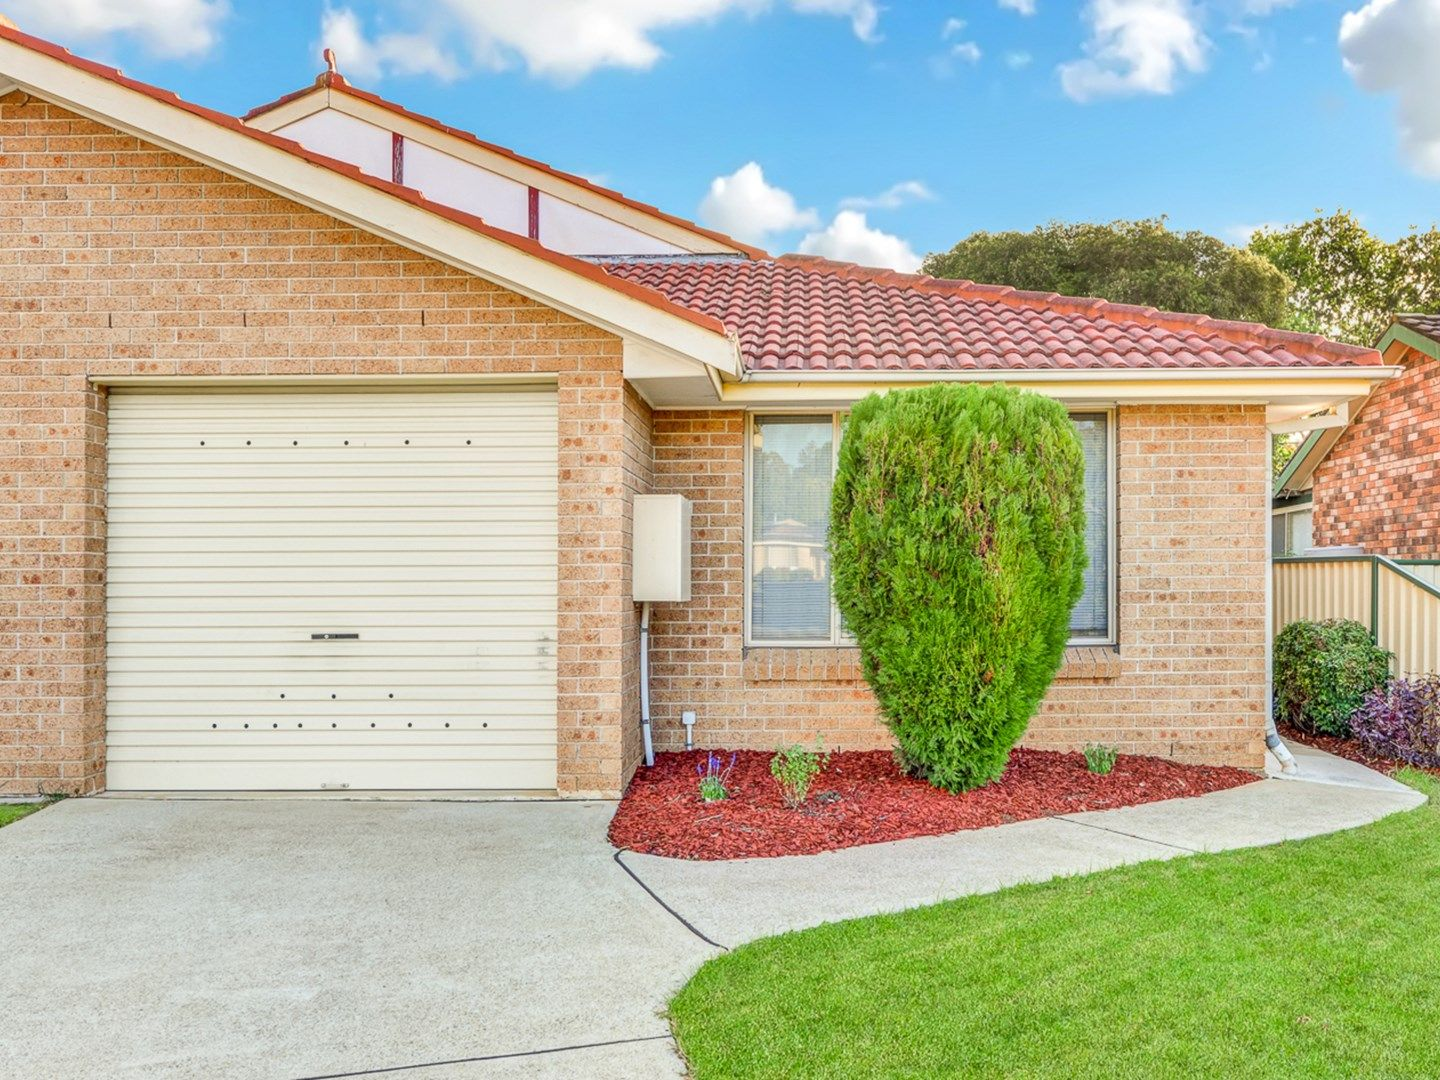 2/84 Spitfire Dr, Raby NSW 2566, Image 0